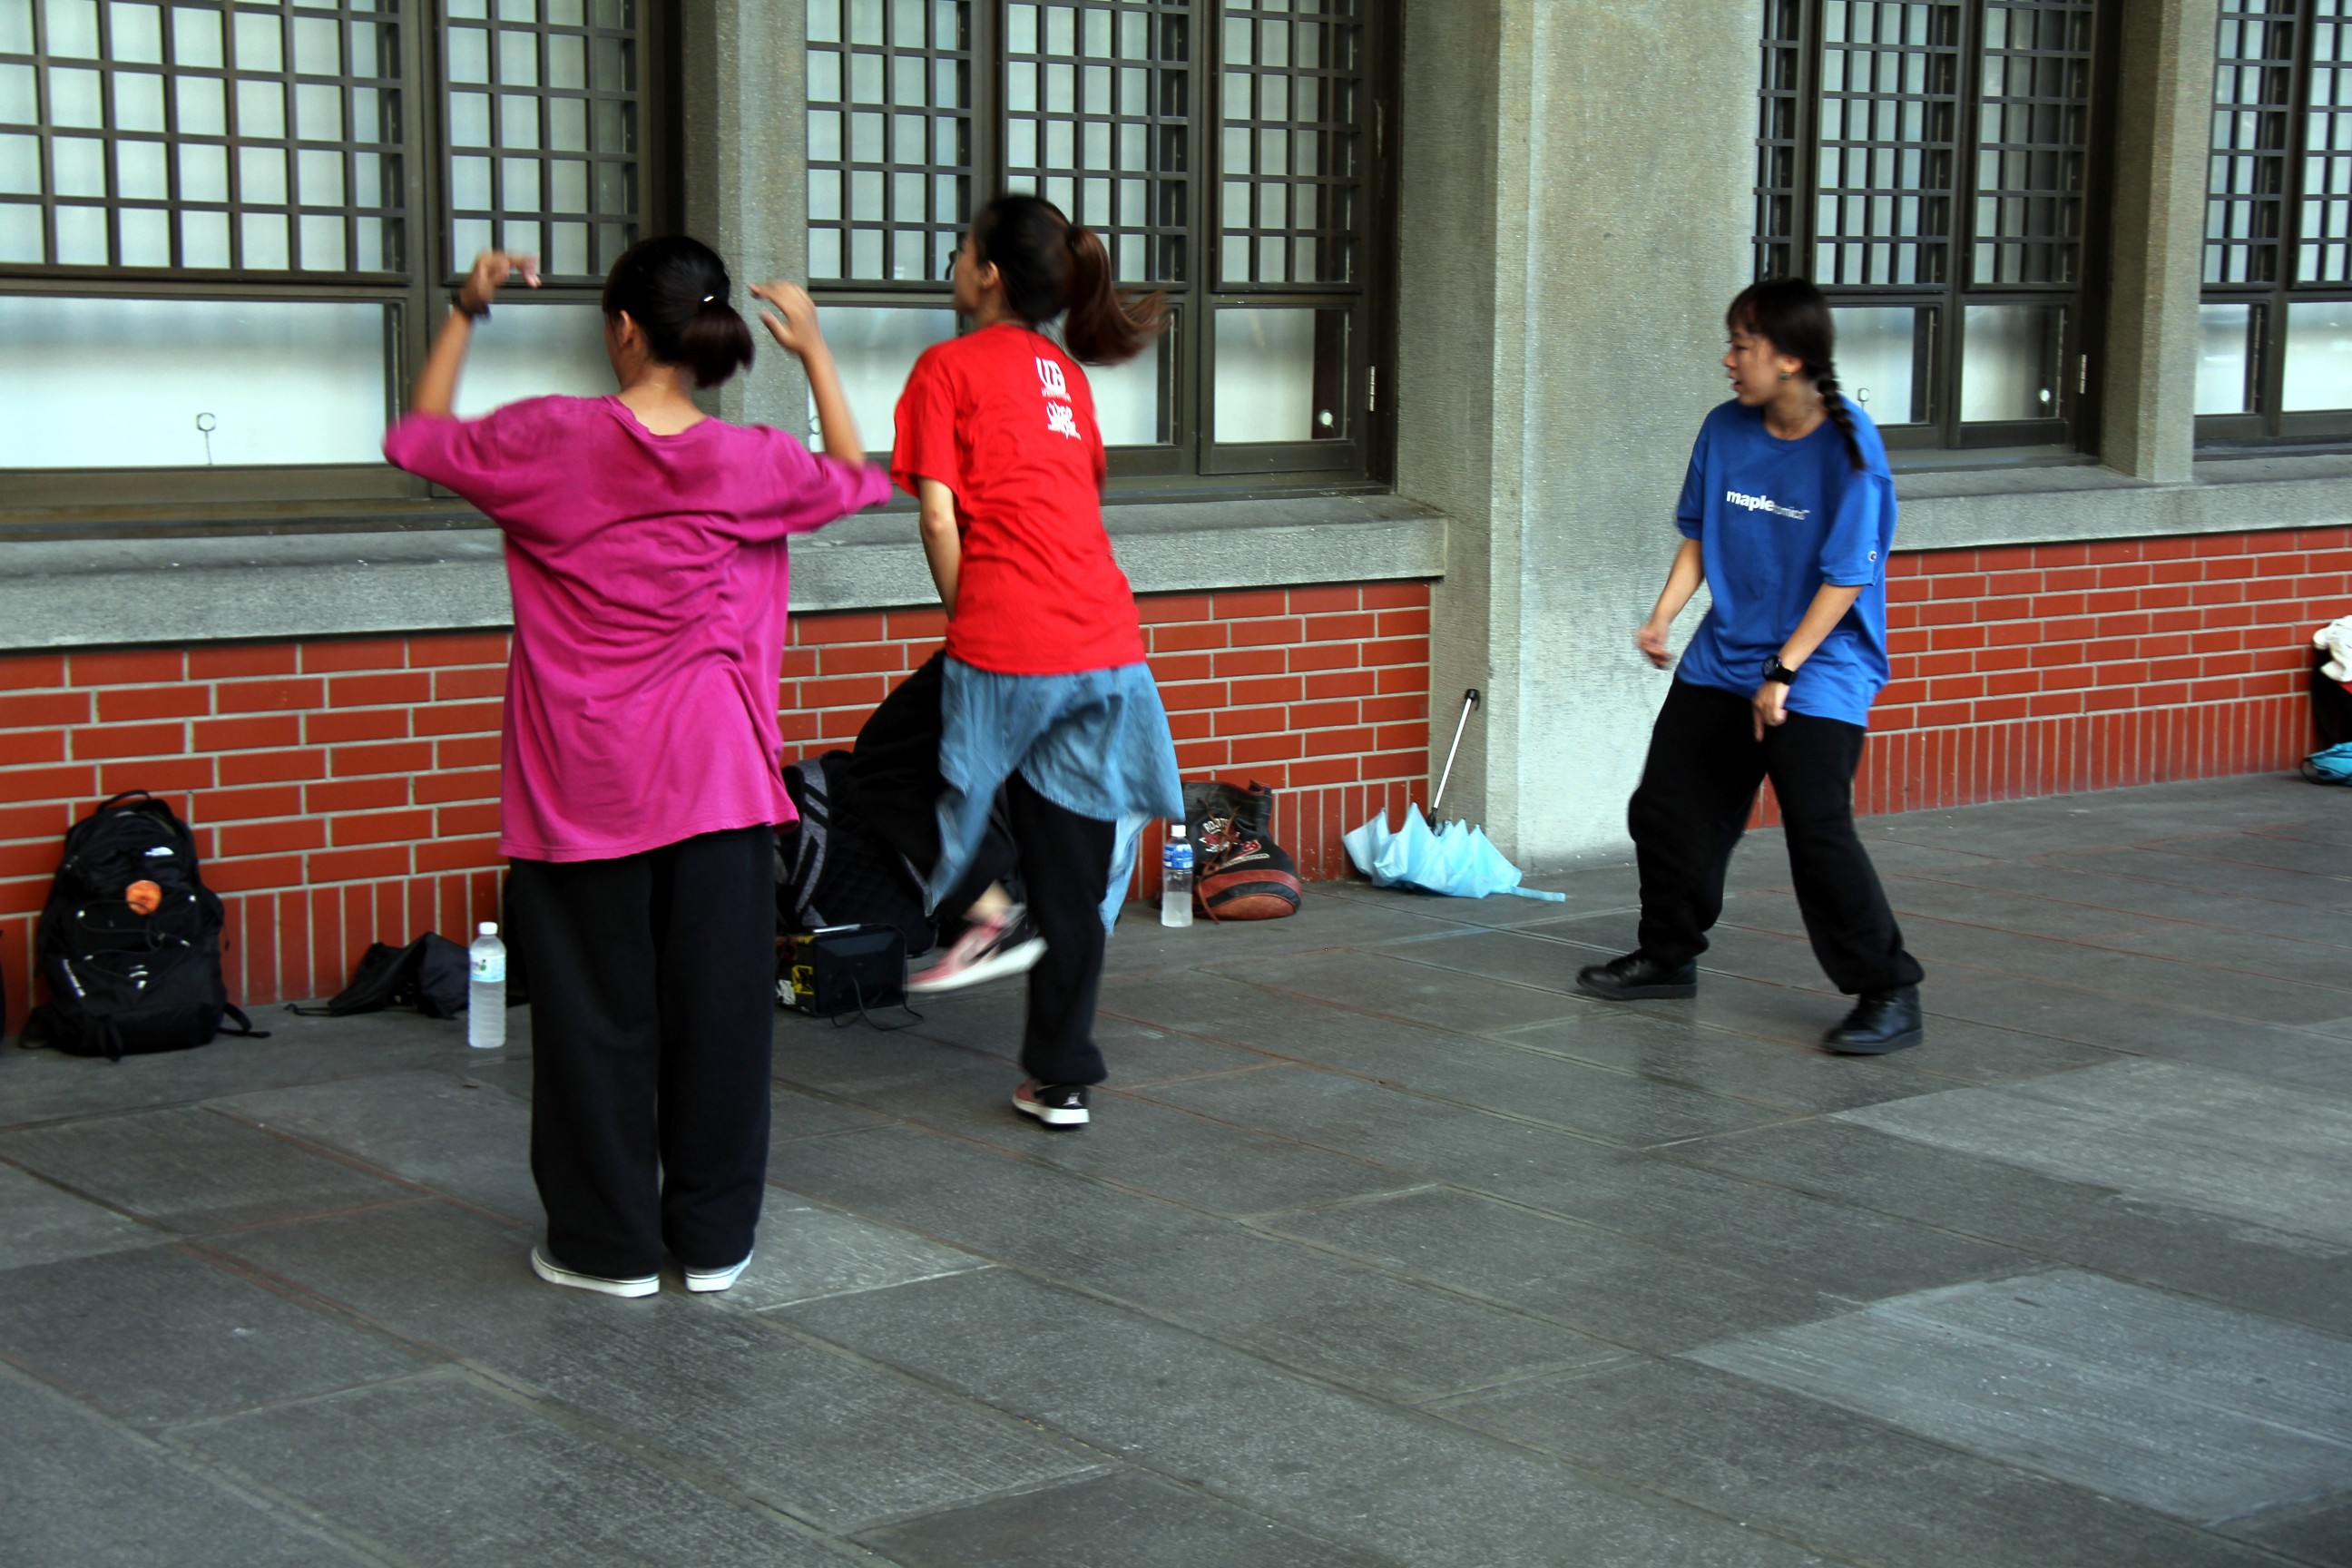 Leisure activities in Taiwan